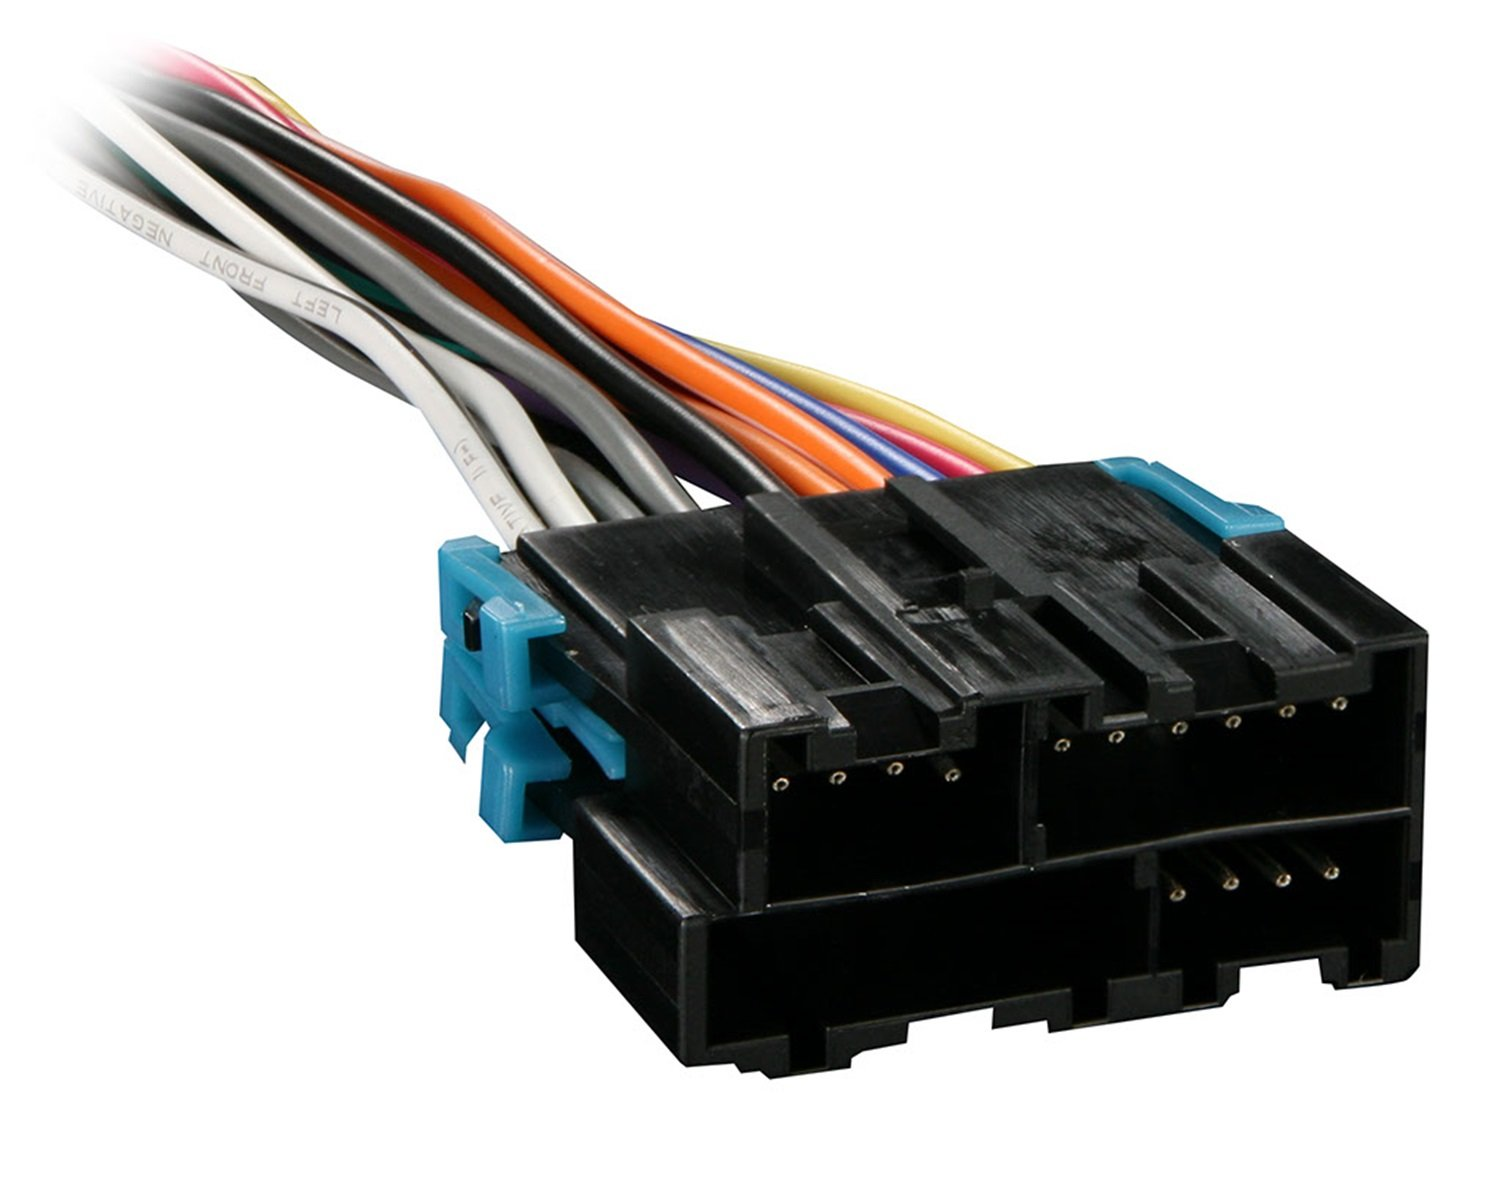 61 CwjZt1hL._SL1500_ radio wiring harnesses amazon com snap on wire harness adapter at bayanpartner.co